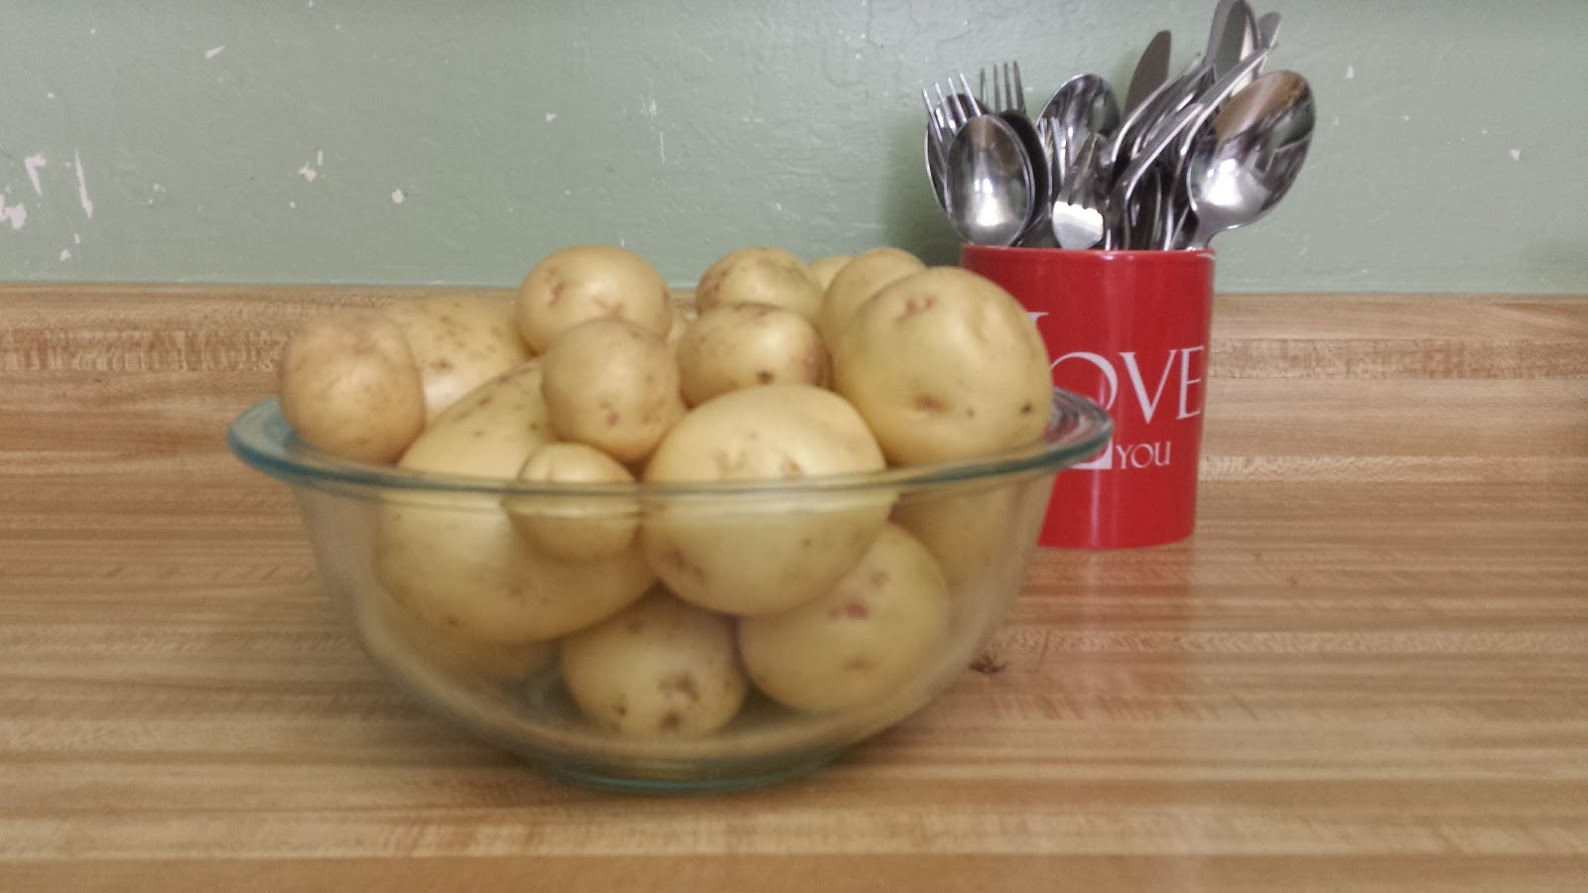 Potatoes...Yum!